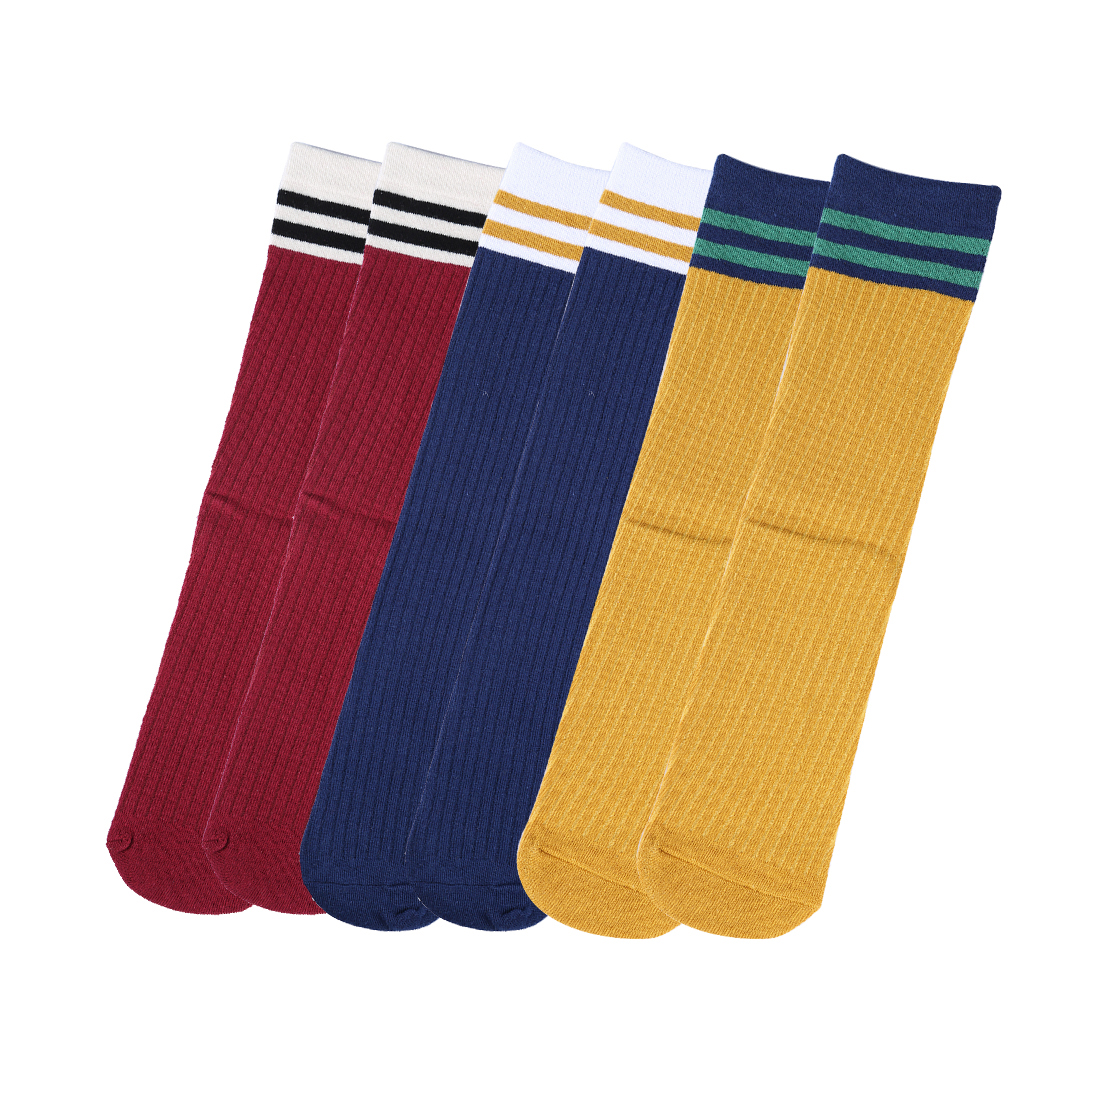 Women Stripes Color Blocks Crew Socks 6 Pairs 7-12 Navy Blue+Curry+Burgundy